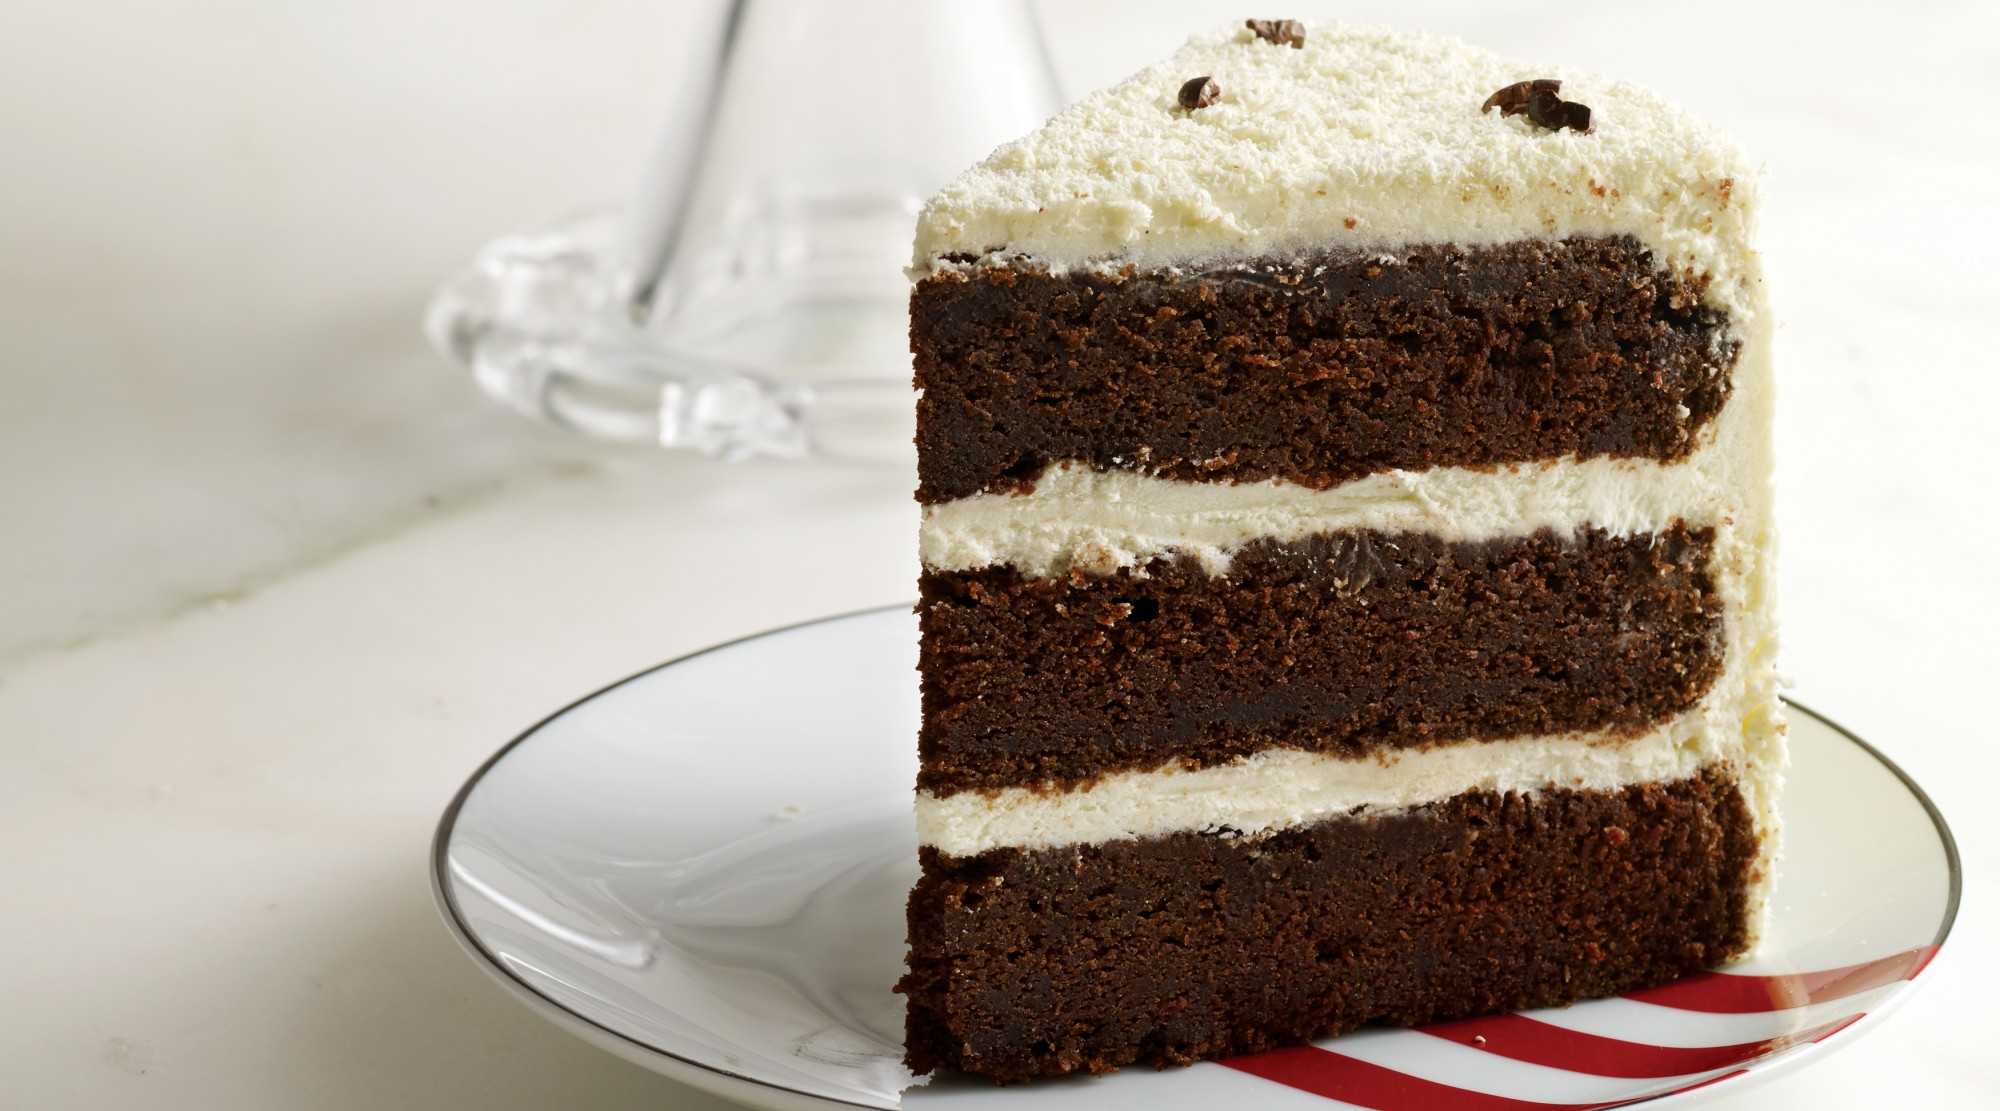 Cake - The Best Food for Successful First Date